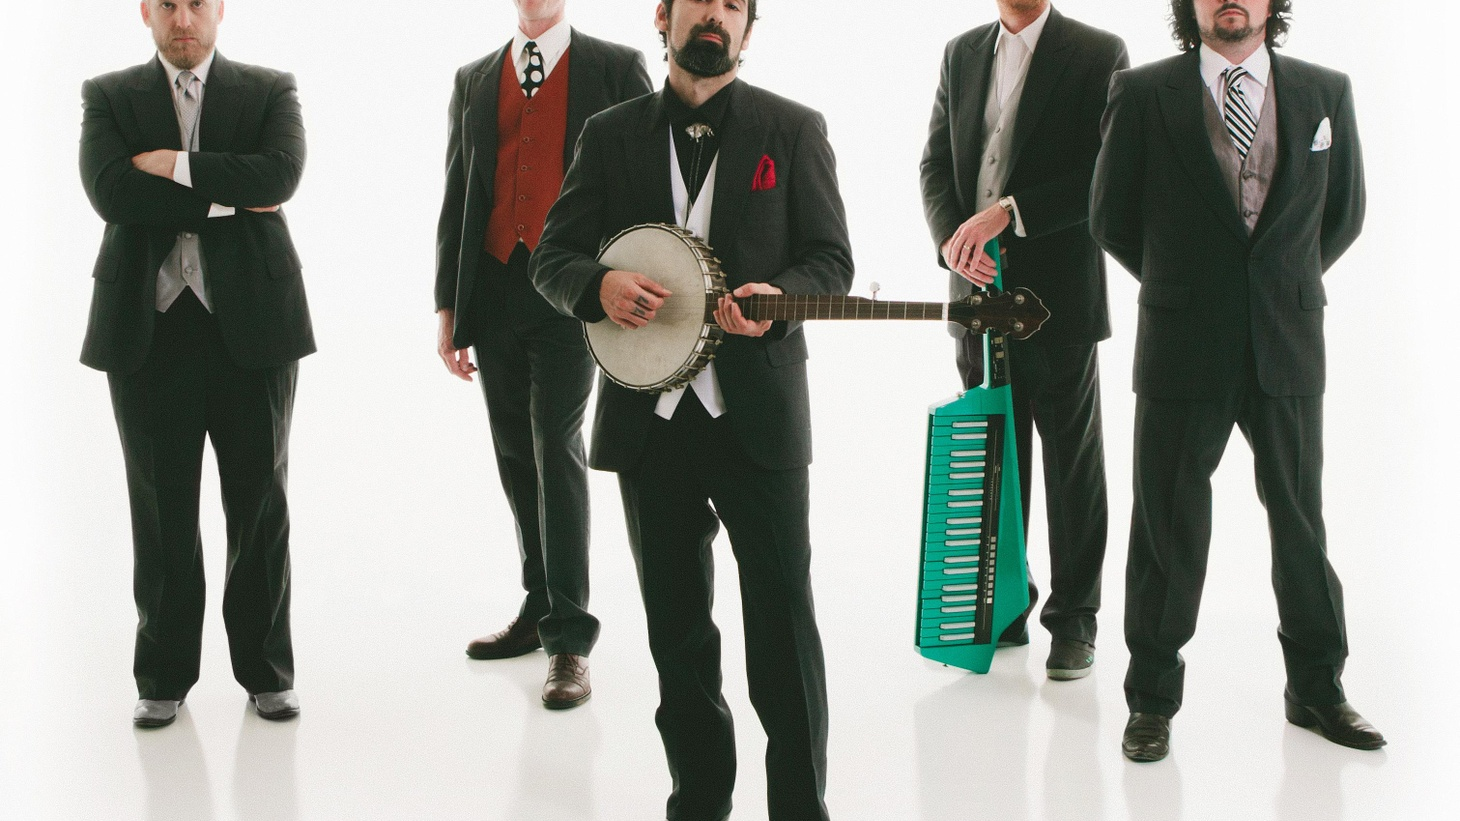 Each song on Blitzen Trapper's new album reveals some kind of story...